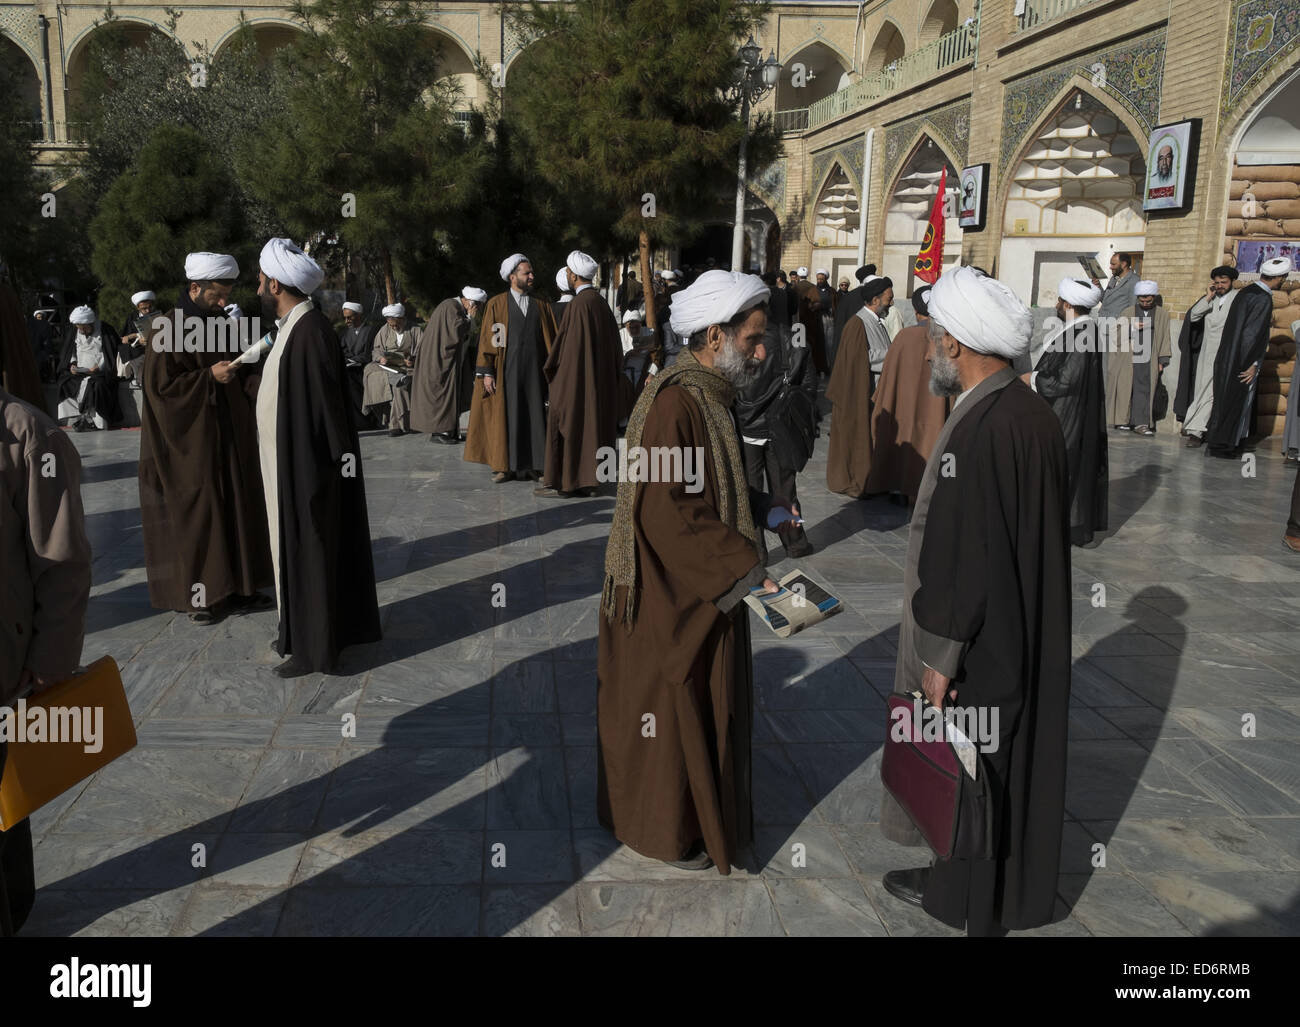 Qom, Iran. 29th Dec, 2014. Iranian clerics talk with each other before a rally to mark December 30, 2009 demonstration - Stock Image